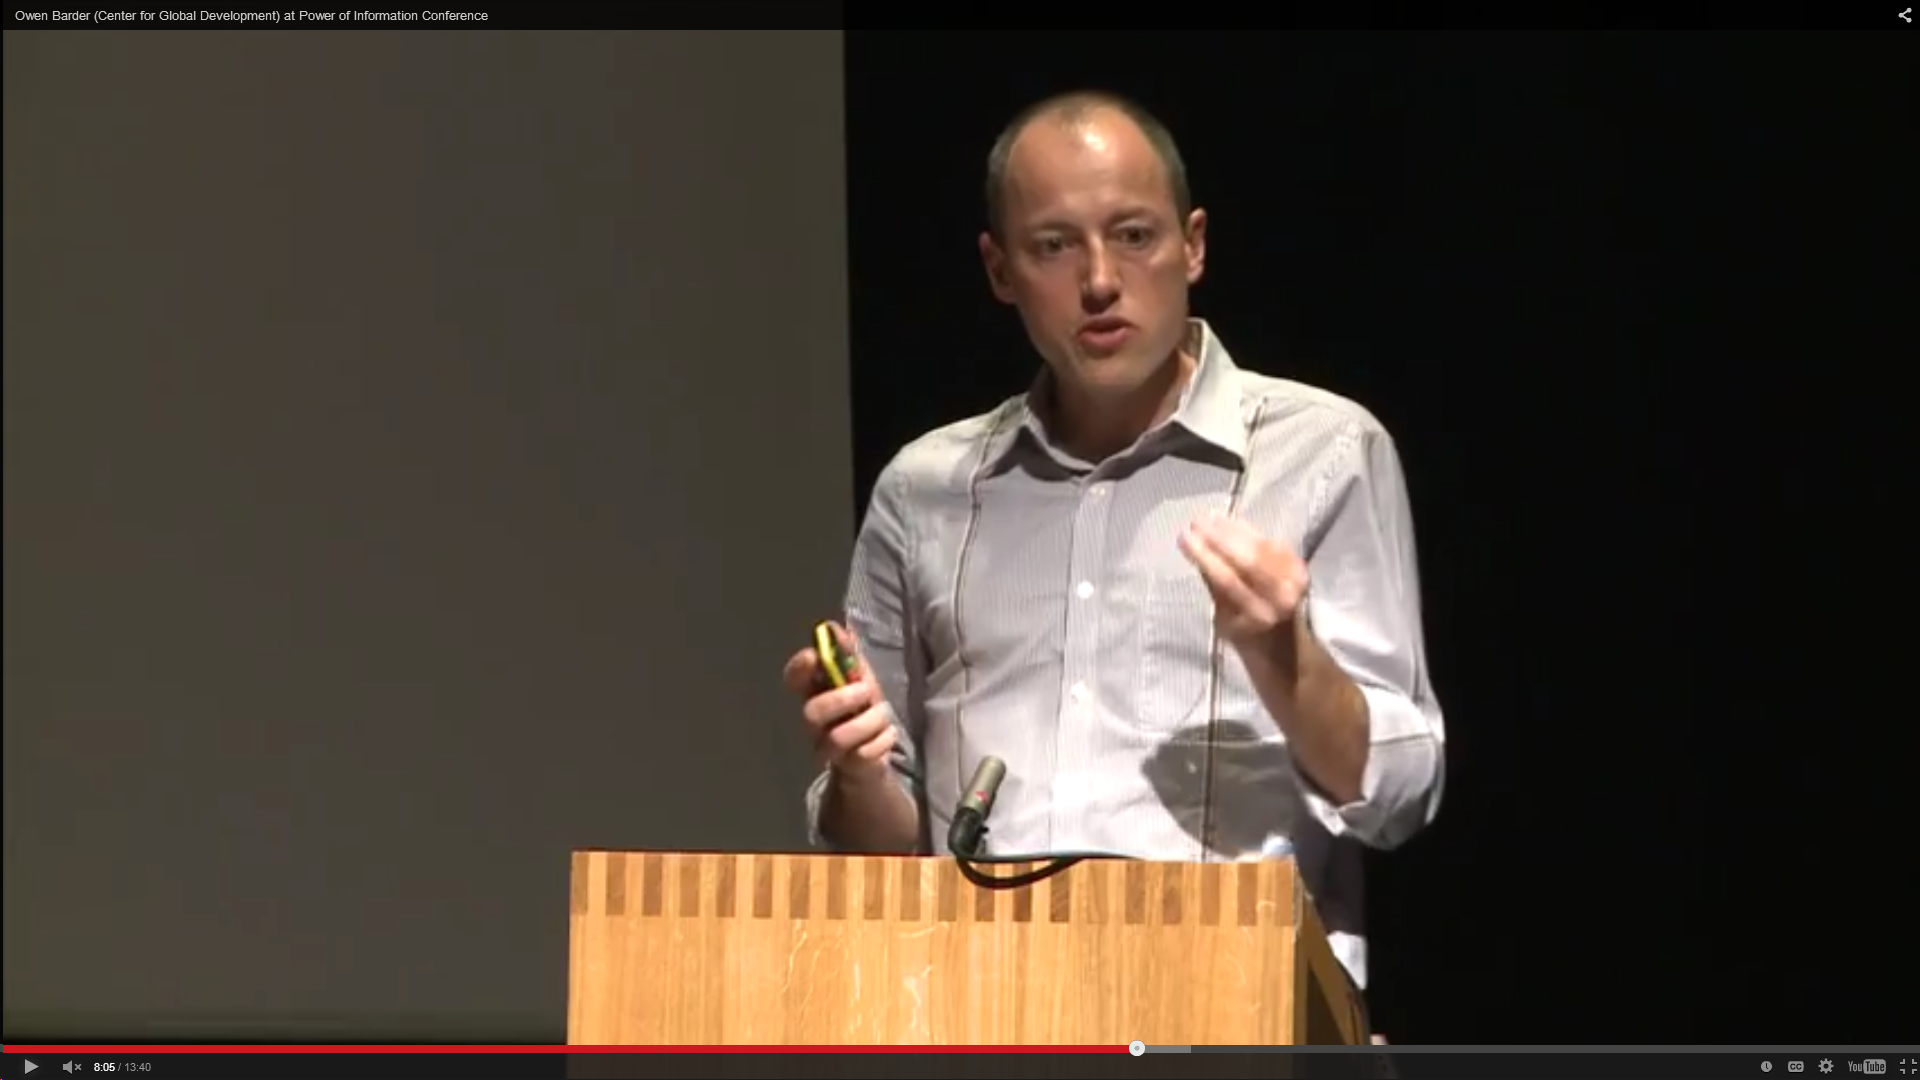 Owen Barder at a lectern, with a black backgroun. 2011